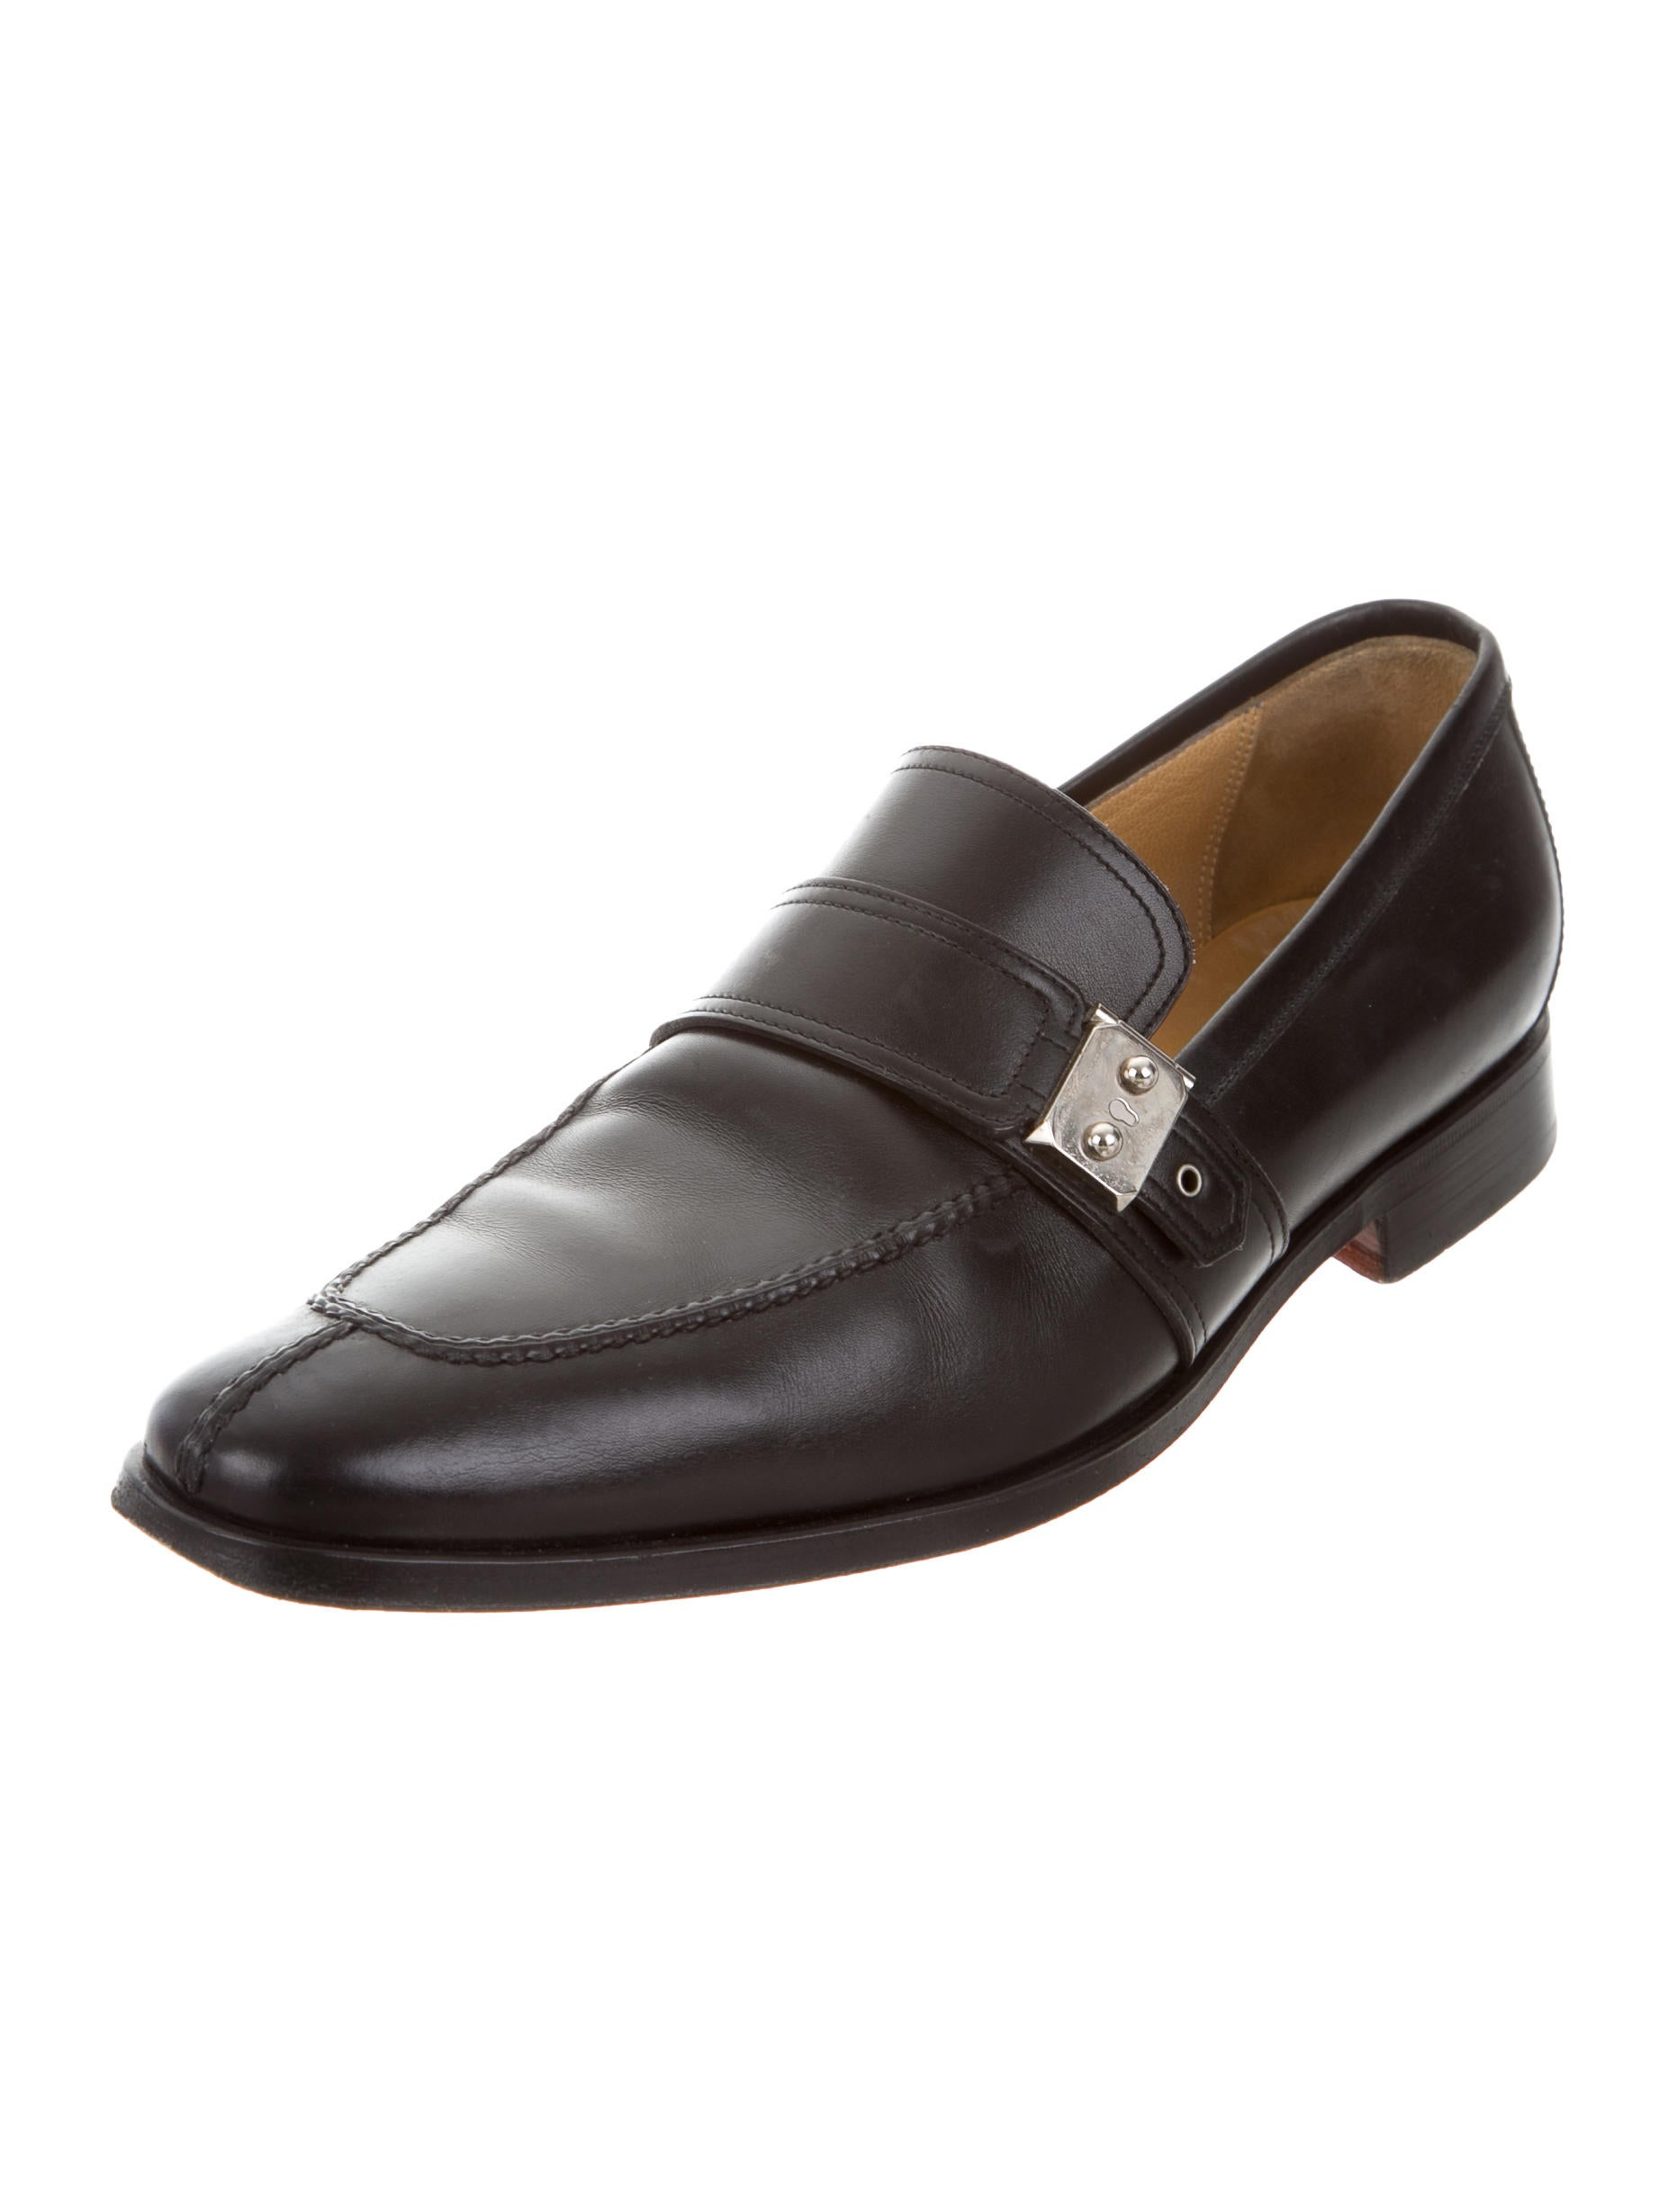 Hermu00e8s Leather Round-Toe Loafers - Shoes - HER106190 | The ...